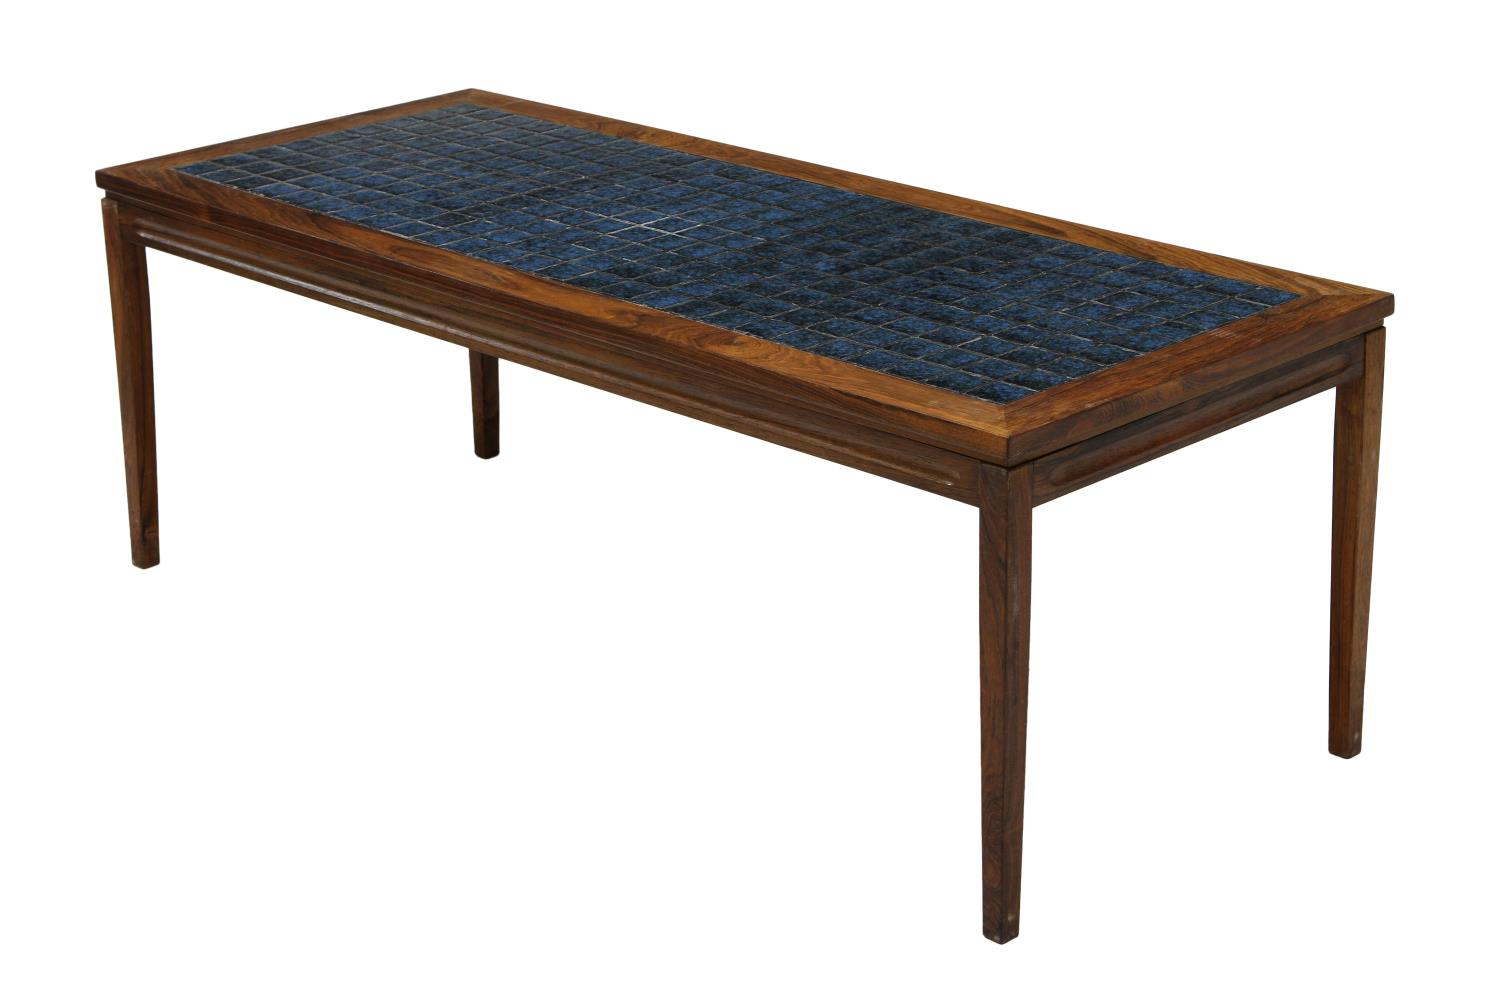 Danish Mid Century Modern Rosewood Tile Top Table March Estates Auction Day One Austin